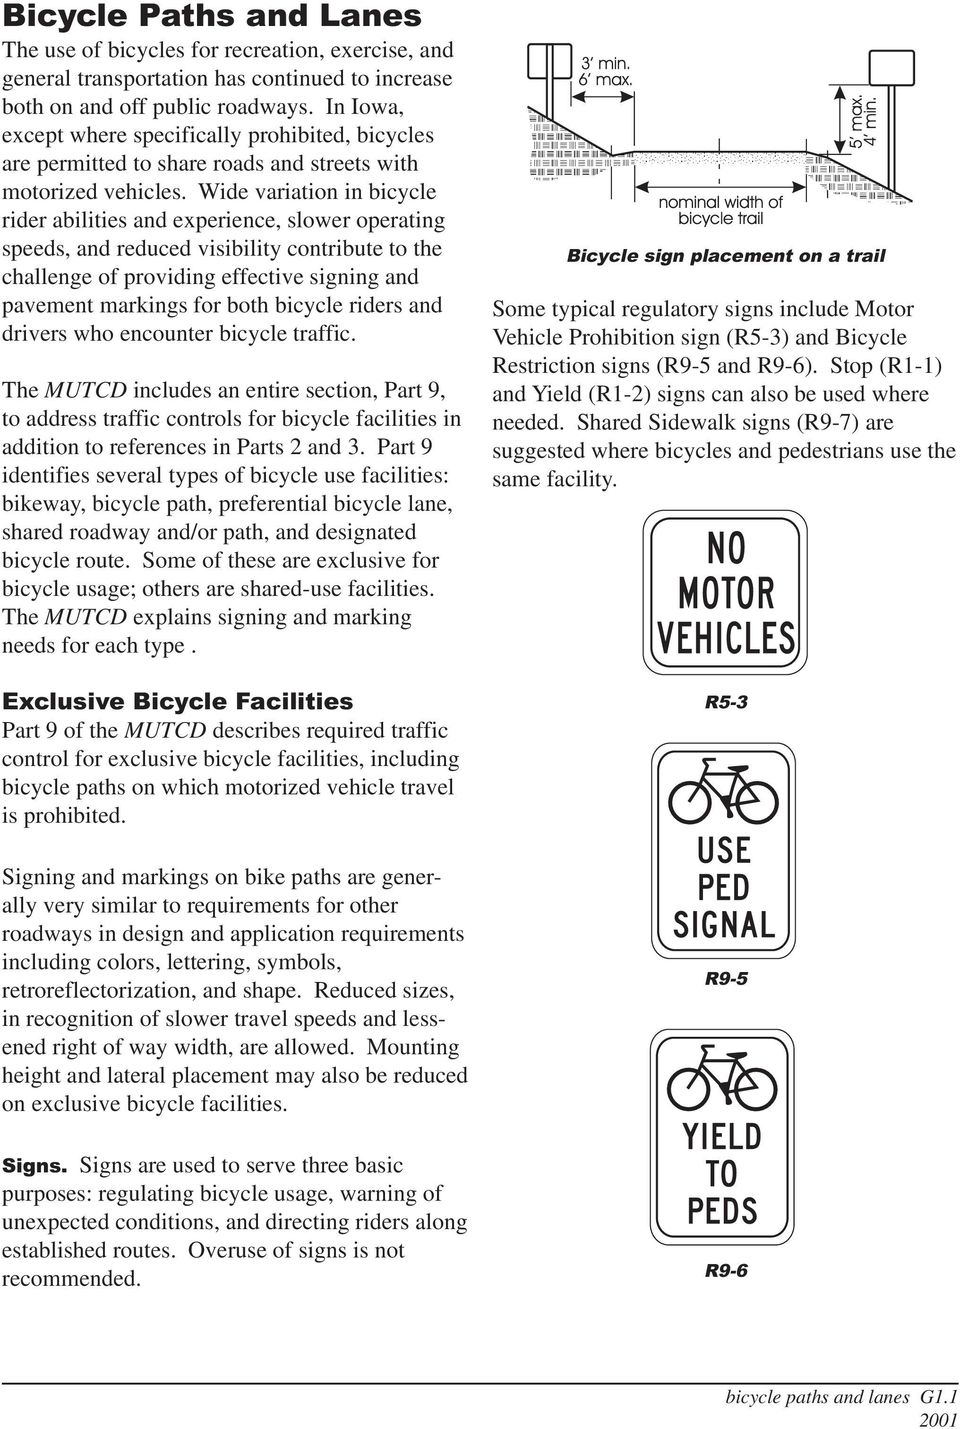 Wide variation in bicycle rider abilities and experience, slower operating speeds, and reduced visibility contribute to the challenge of providing effective signing and pavement markings for both